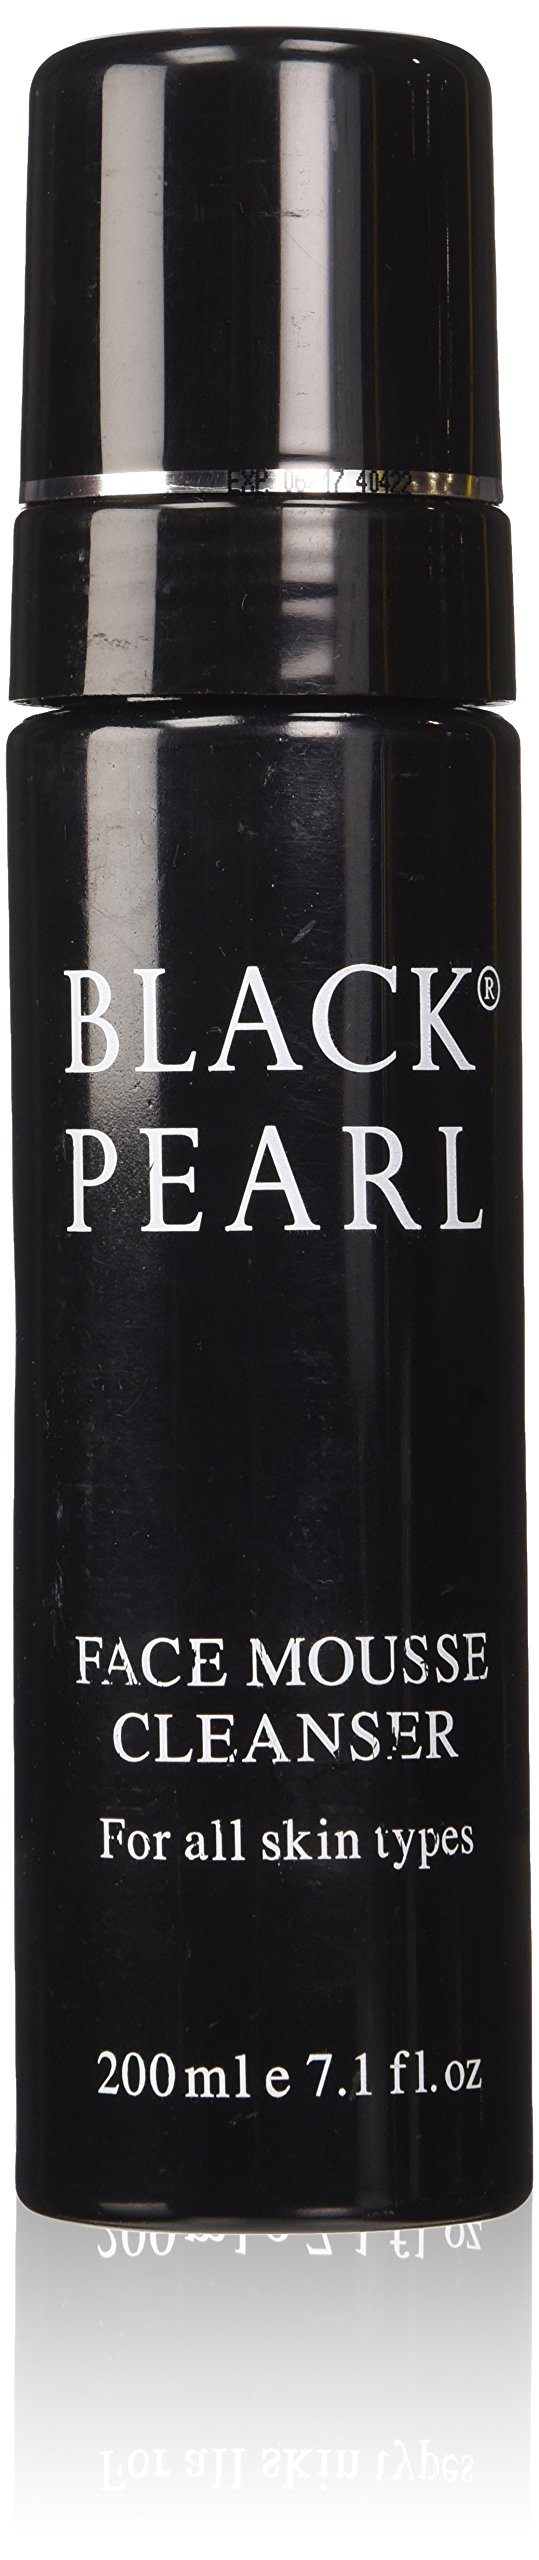 Sea of Spa Black Pearl - Facial Mousse Cleanser, 7.1-Ounce